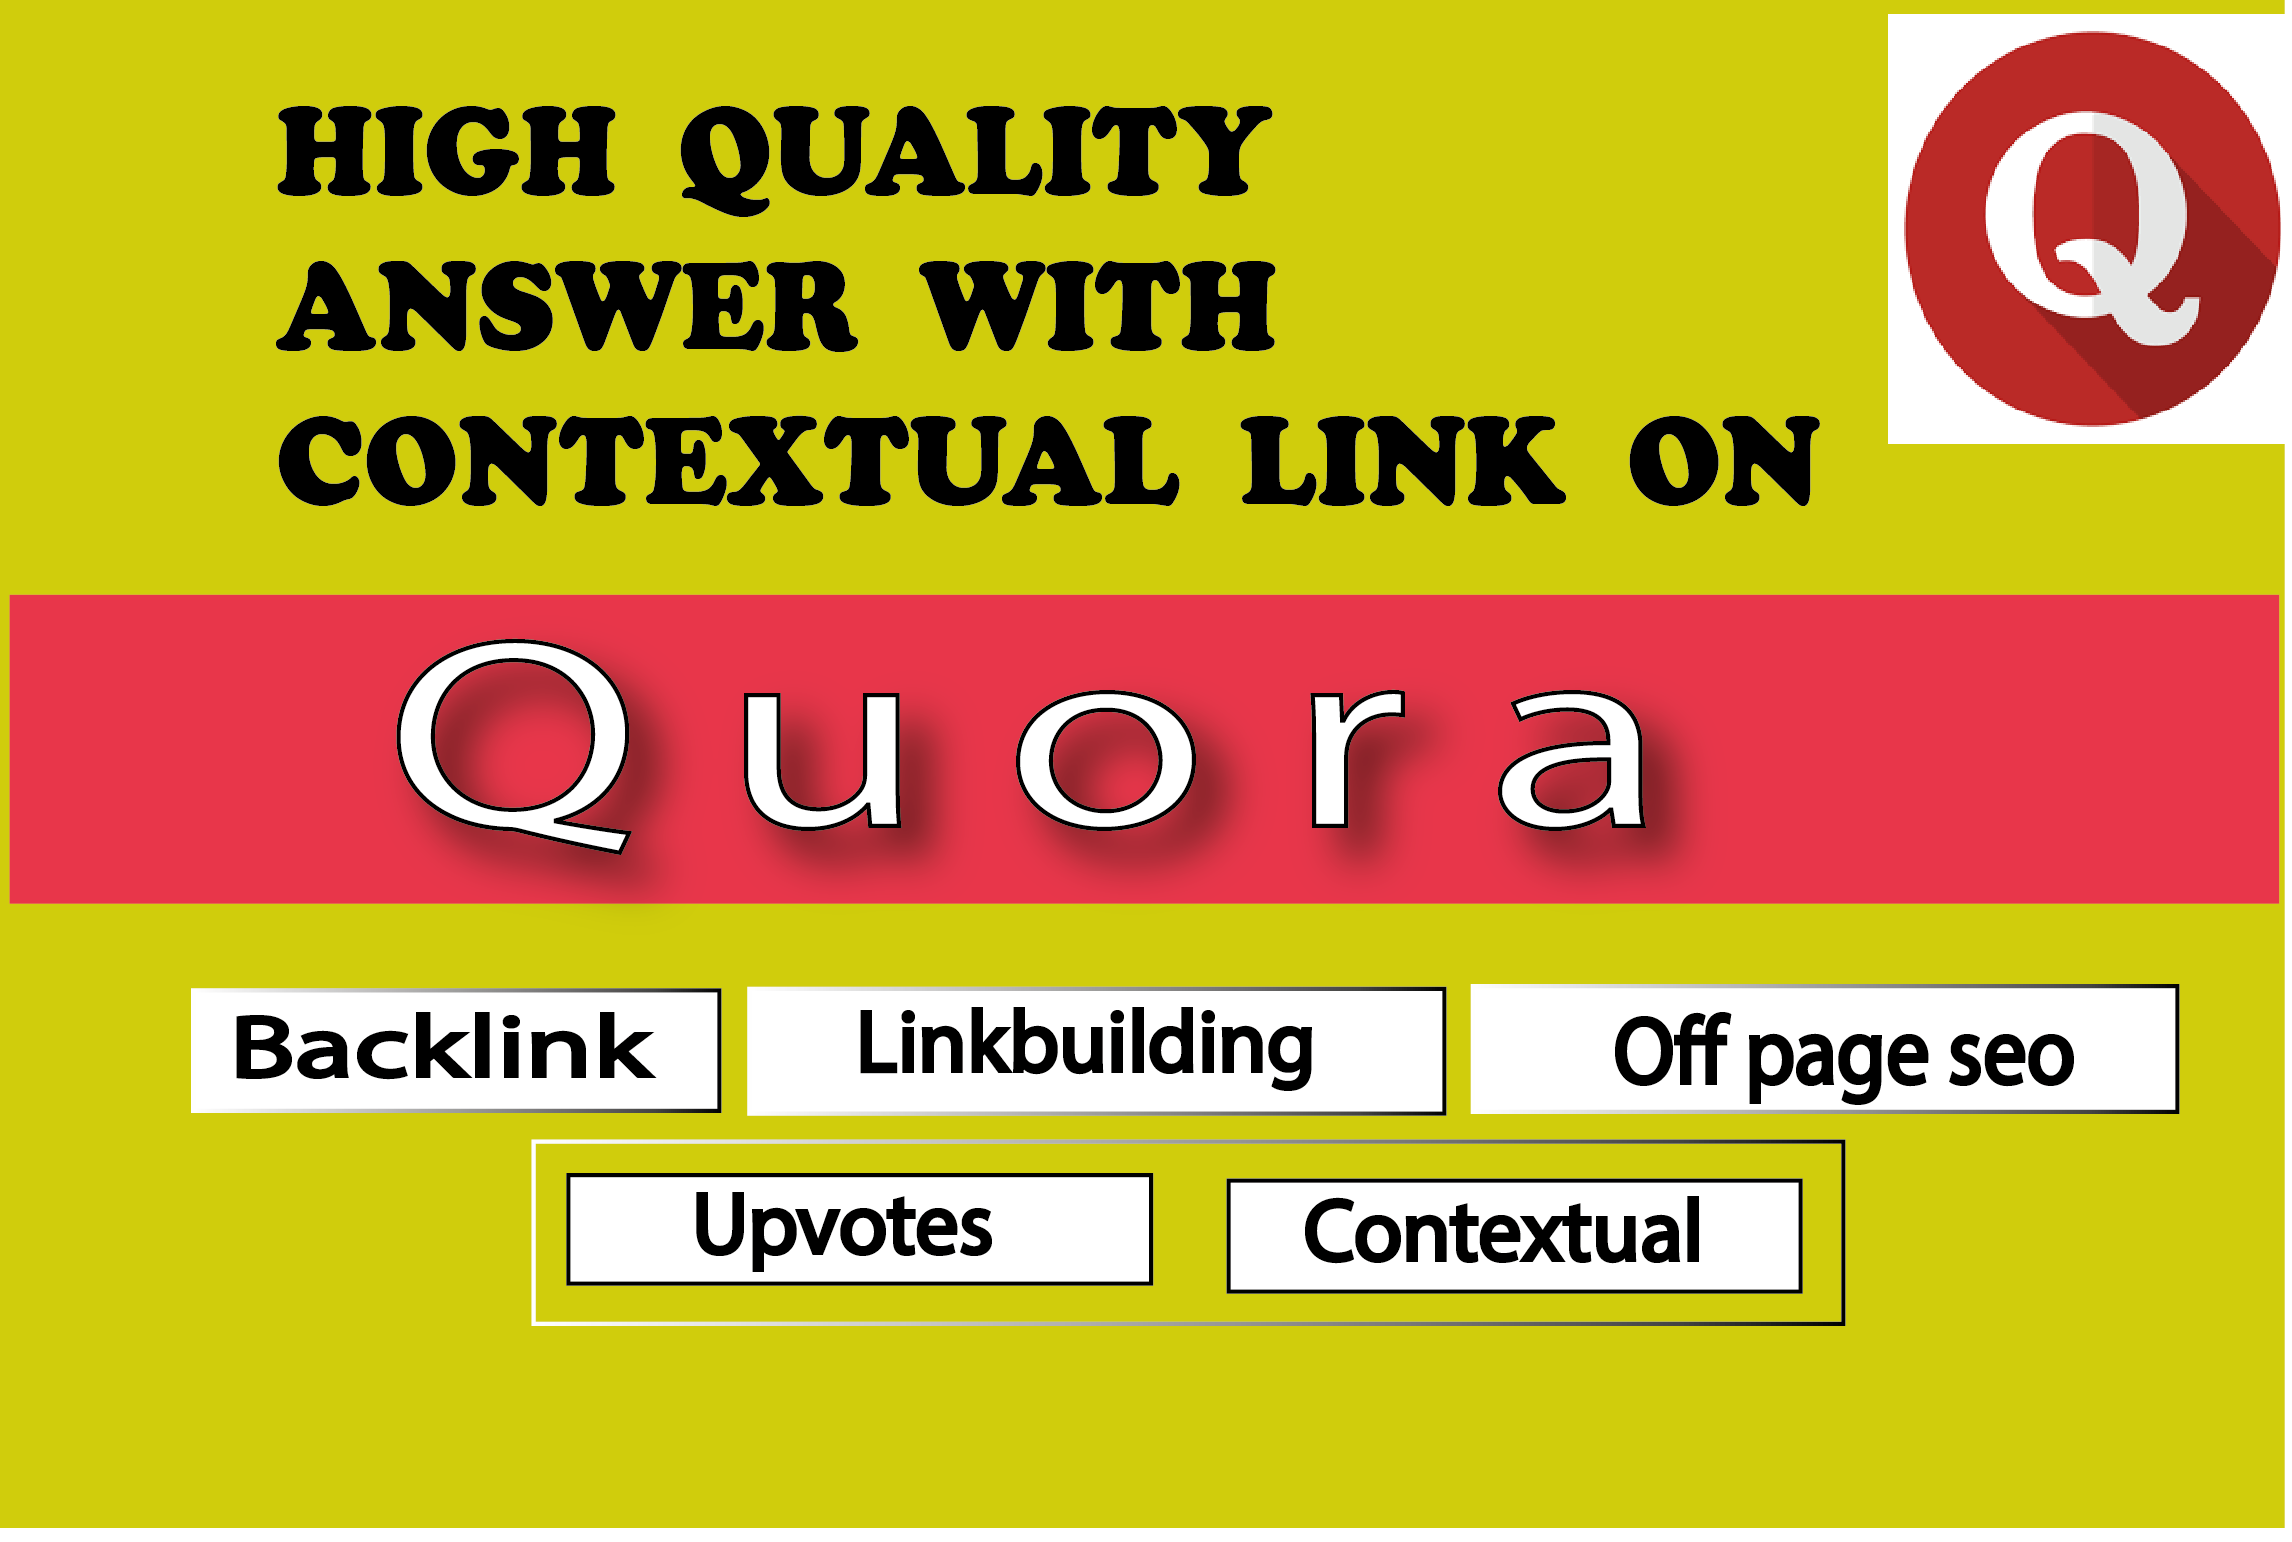 30 unique Quora answer with backlink